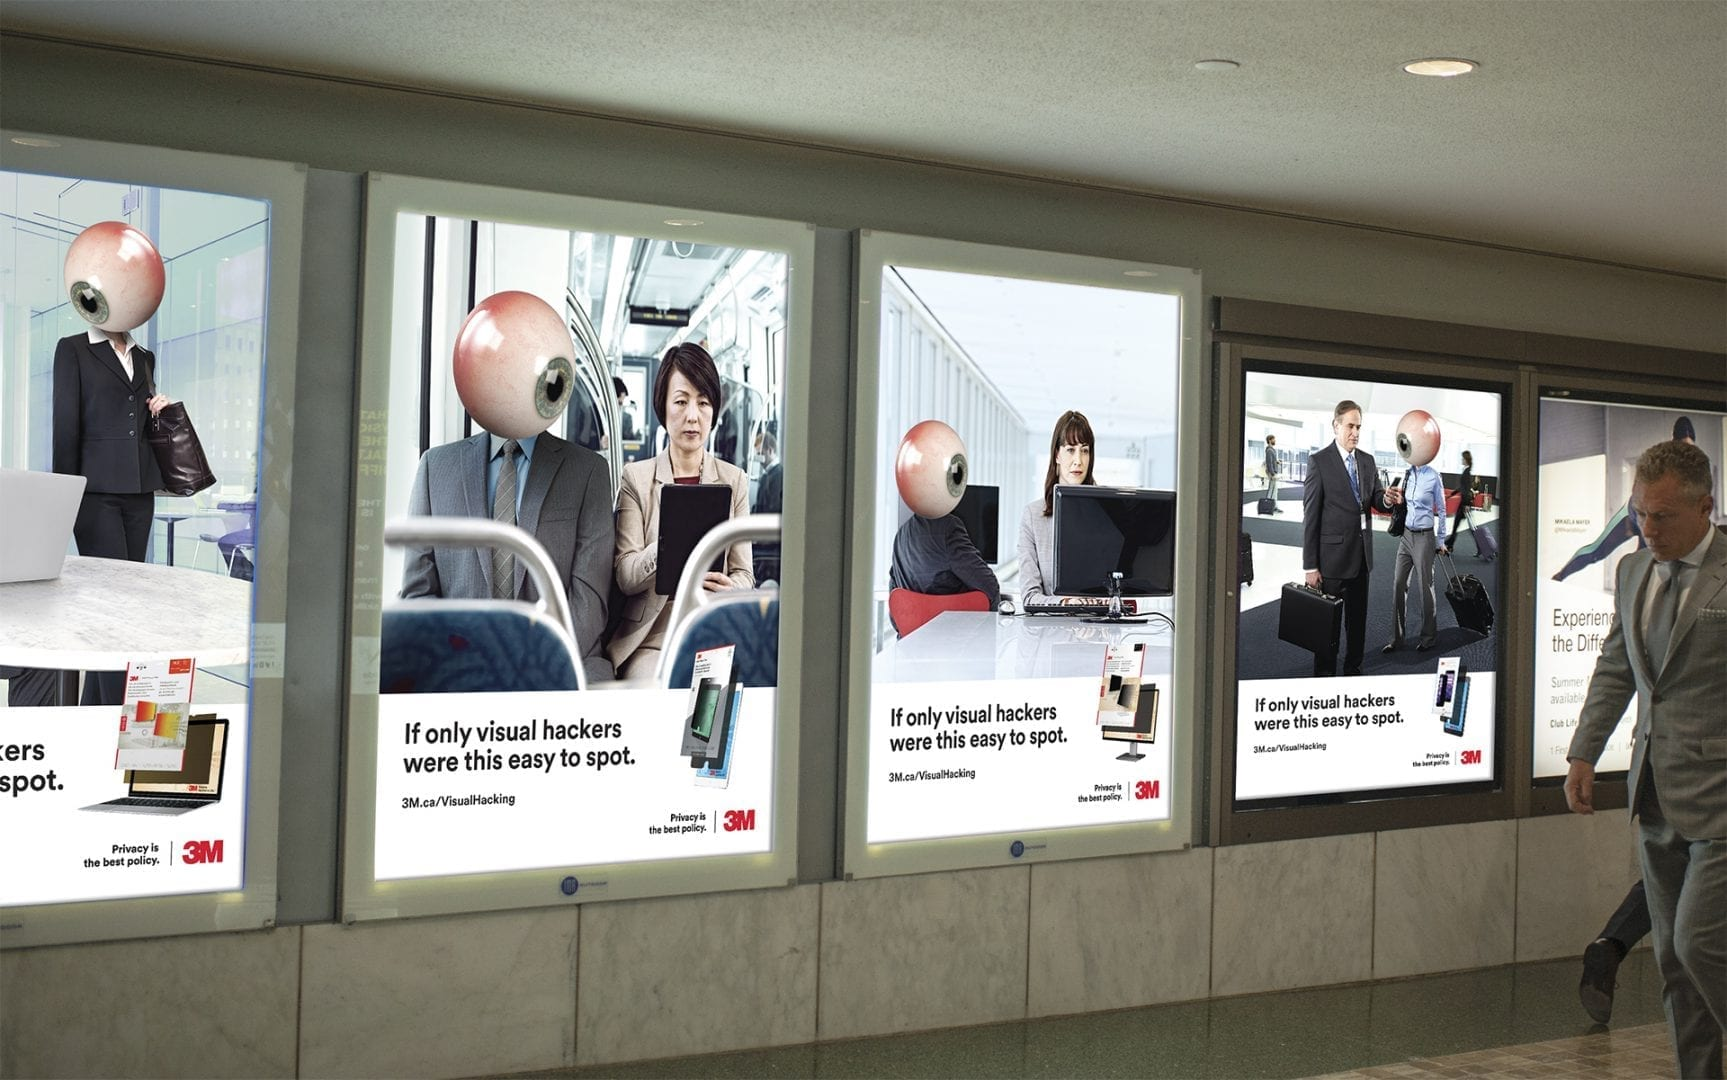 3M Visual Hacking out-of-home advertisements